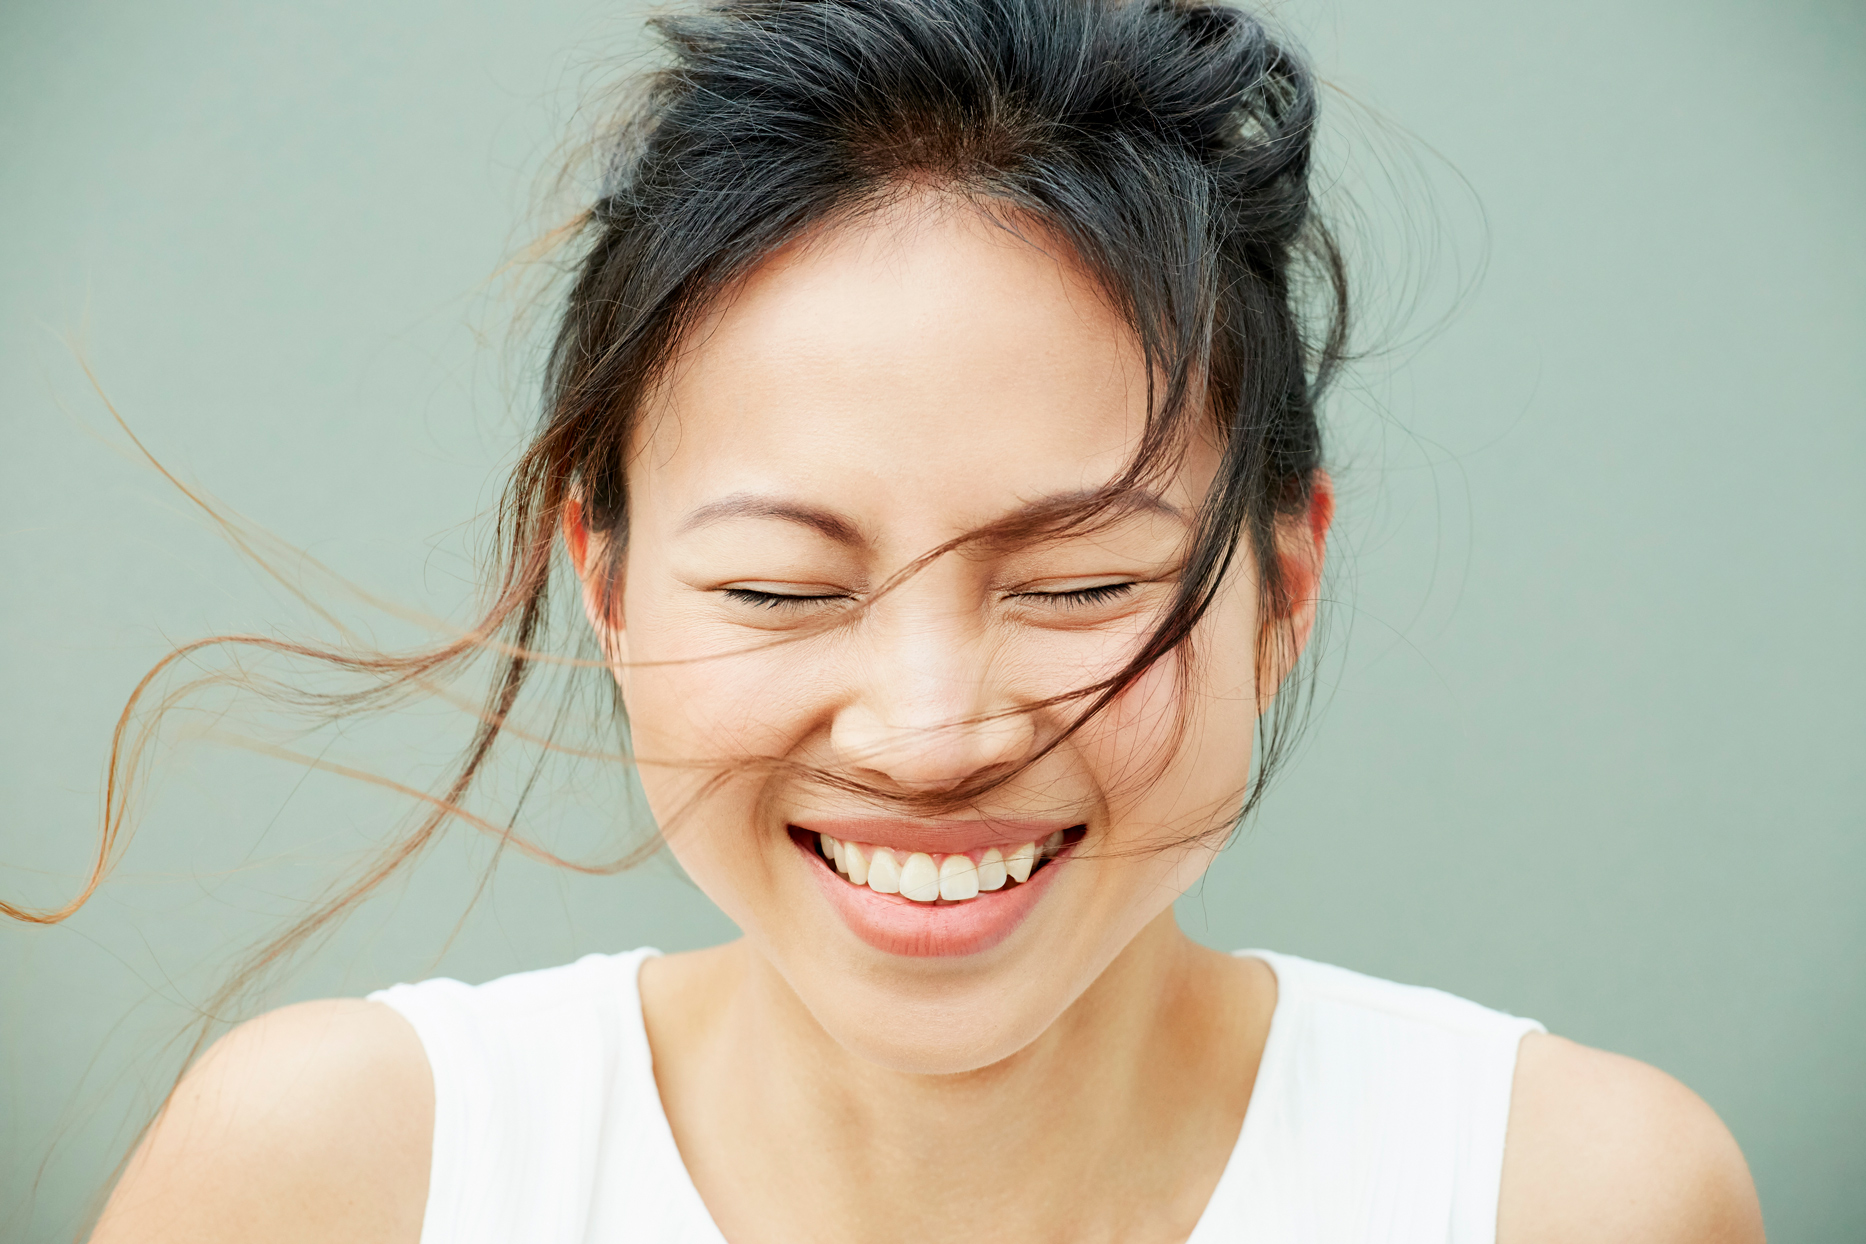 woman smiling with hair blowing in her face